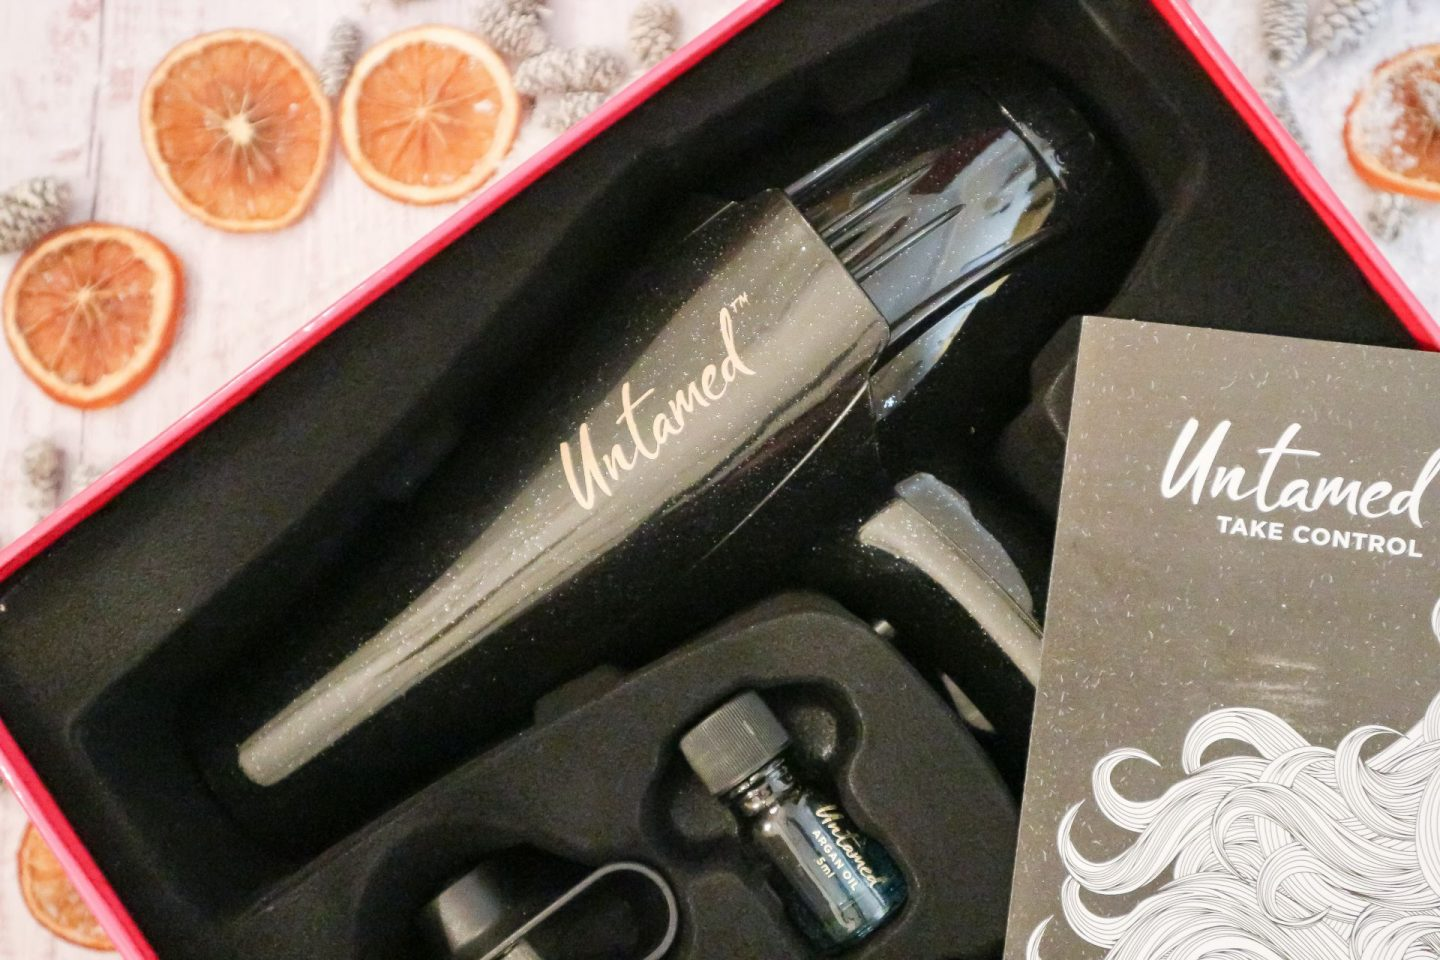 Untamed Defrizz Hairdryer with Argan Oil